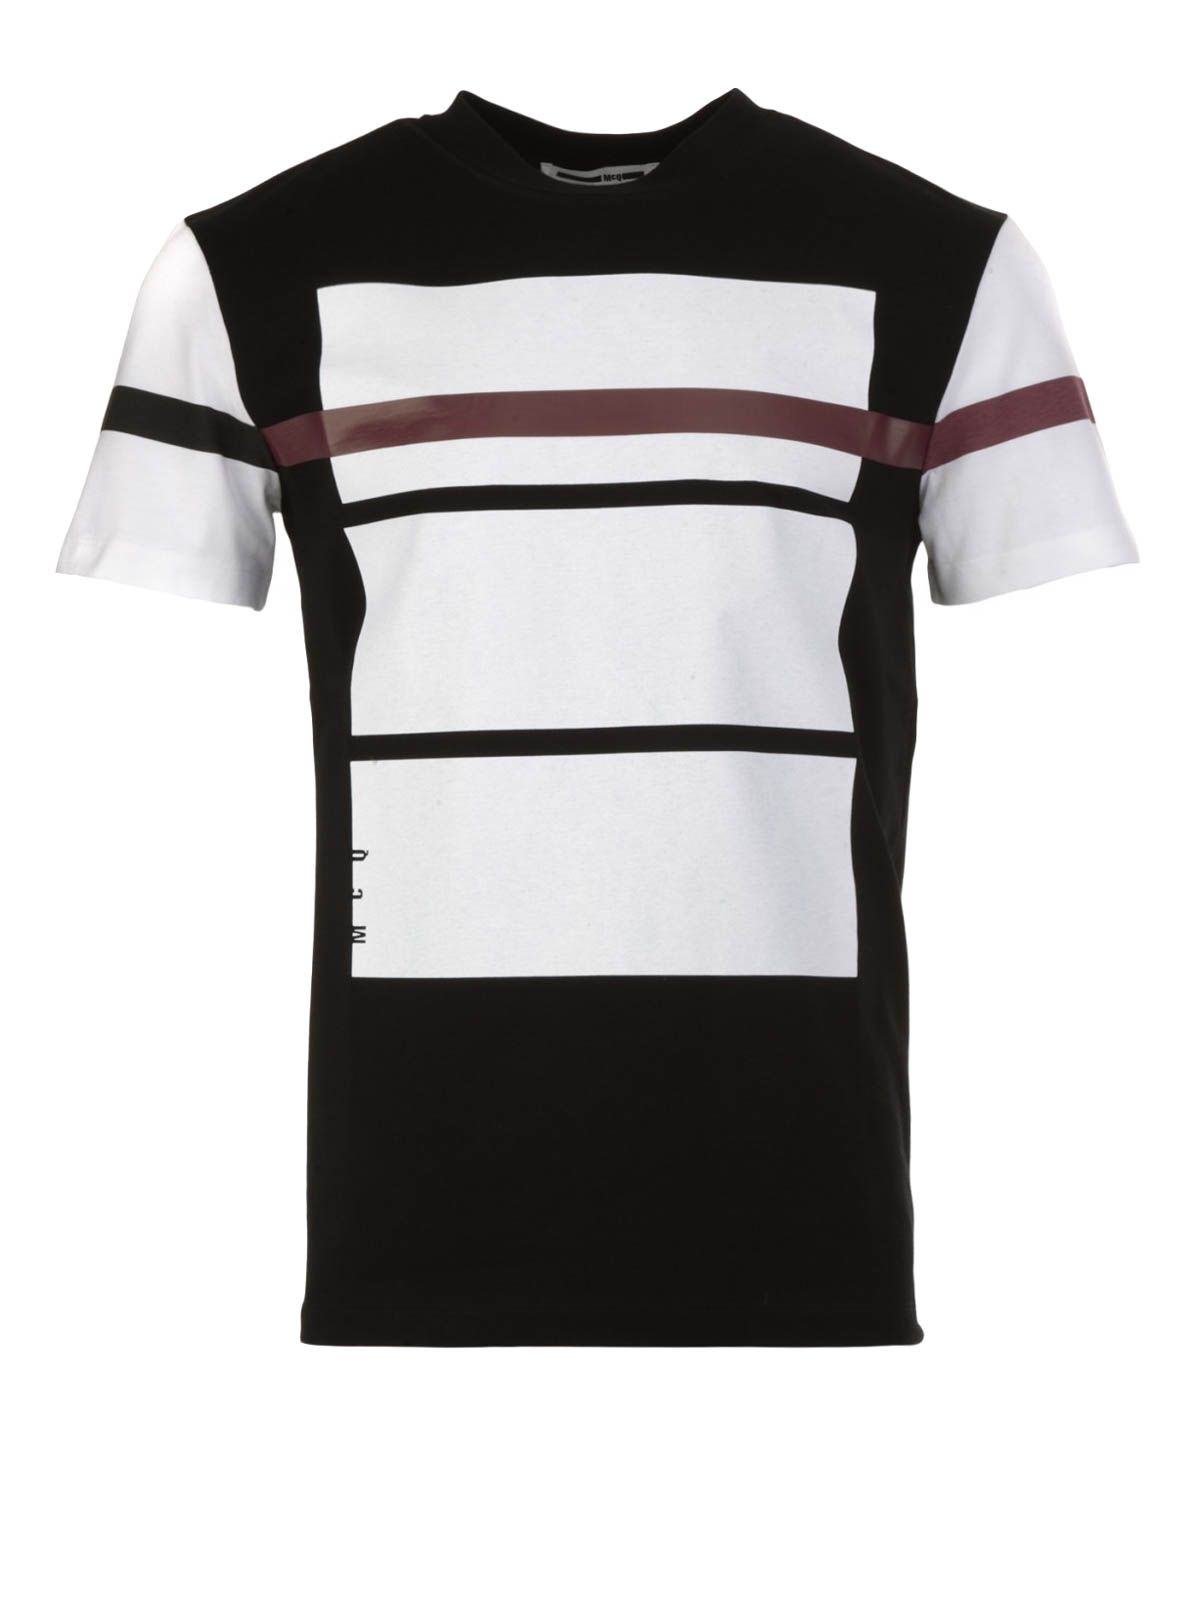 Red line print t shirt by mcq t shirts ikrix for Red line printing